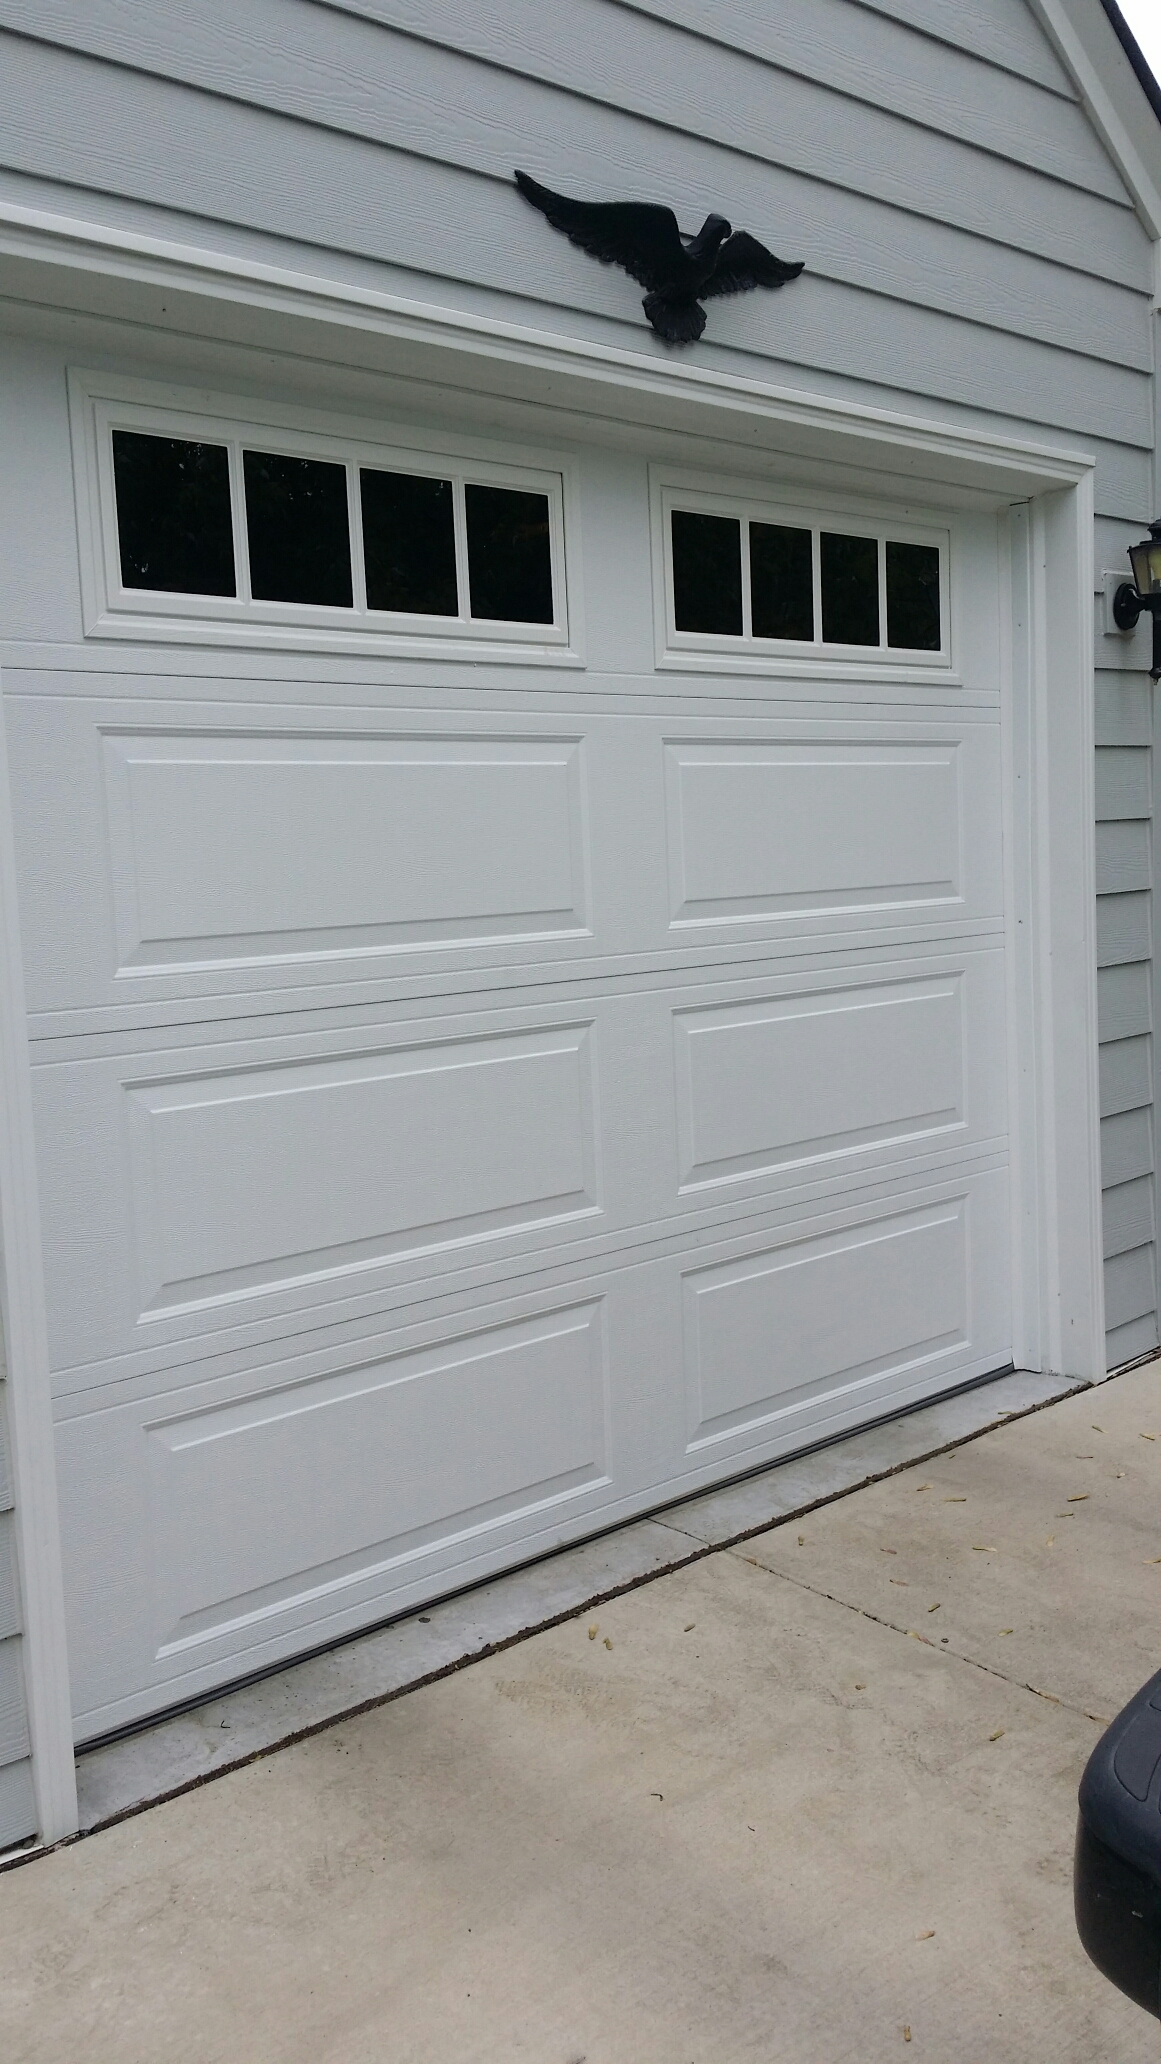 2064 #71675A New Garage Door Installation A North Central LP138 9x7 Garage Door  wallpaper Garage Doors In My Area 37451161